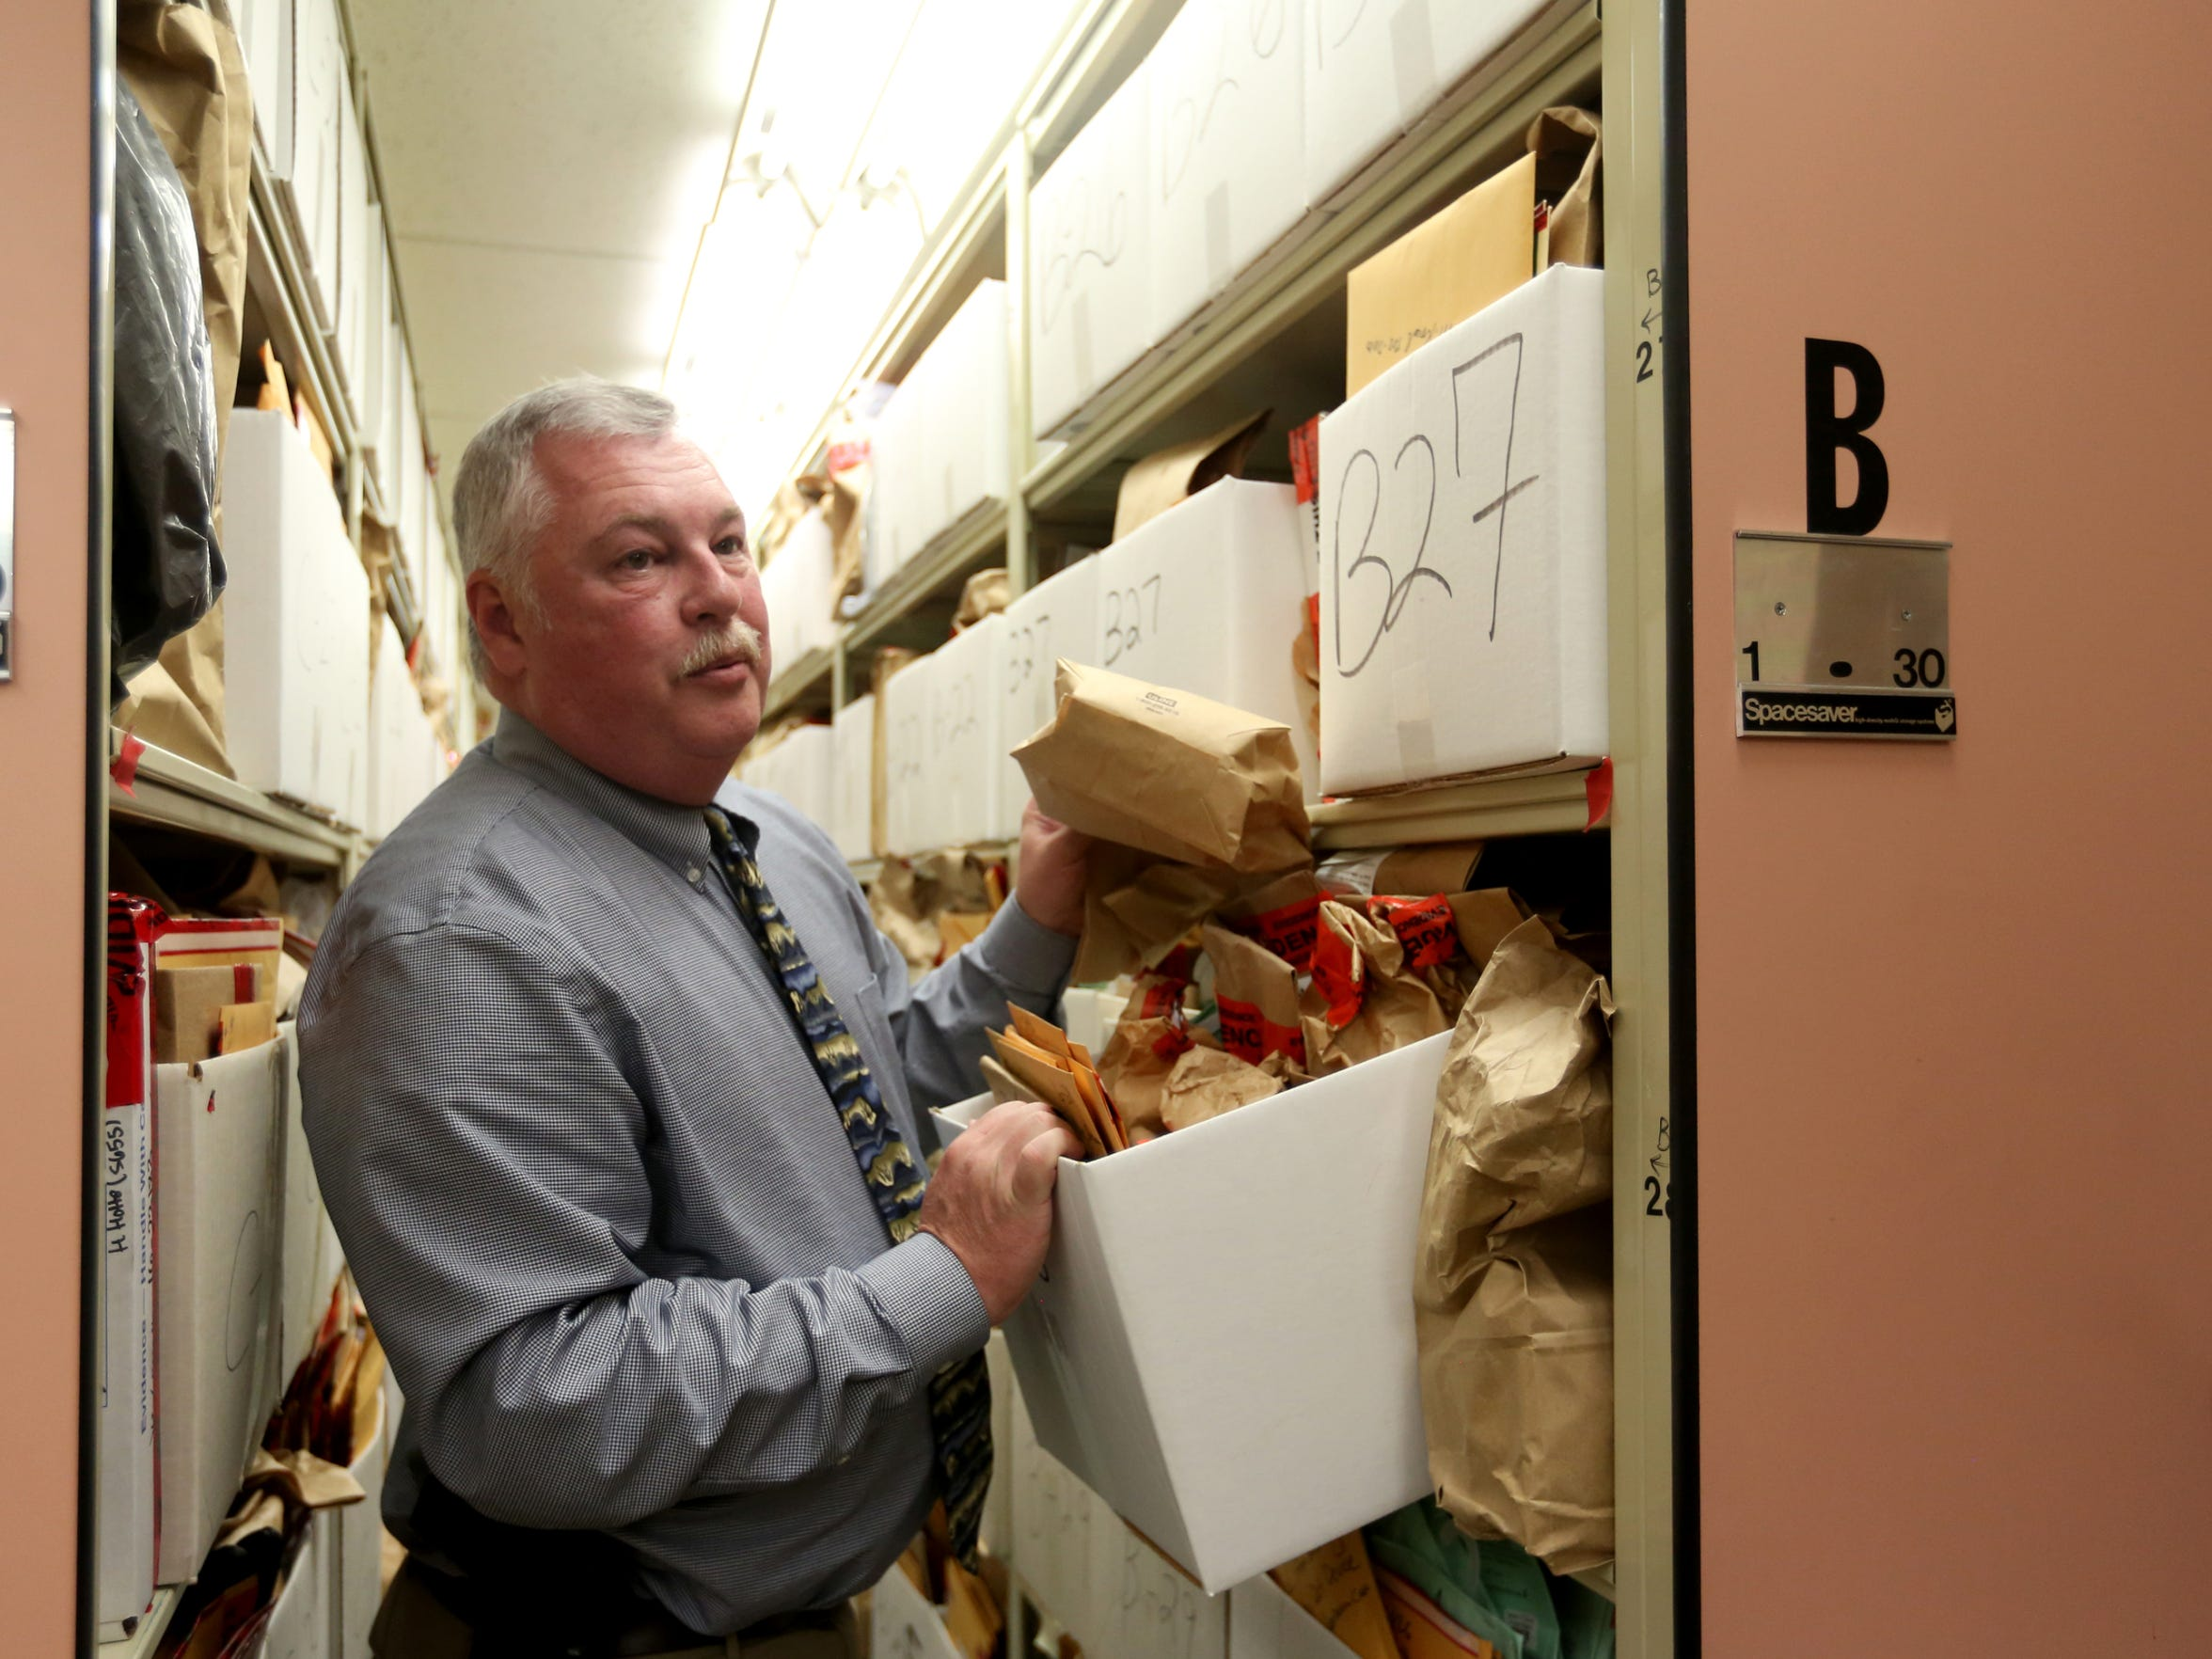 Deputy Chief Steve Bellshaw look through evidence boxes at the Salem Police Department facility at City Hall on Friday, Oct. 14, 2016.